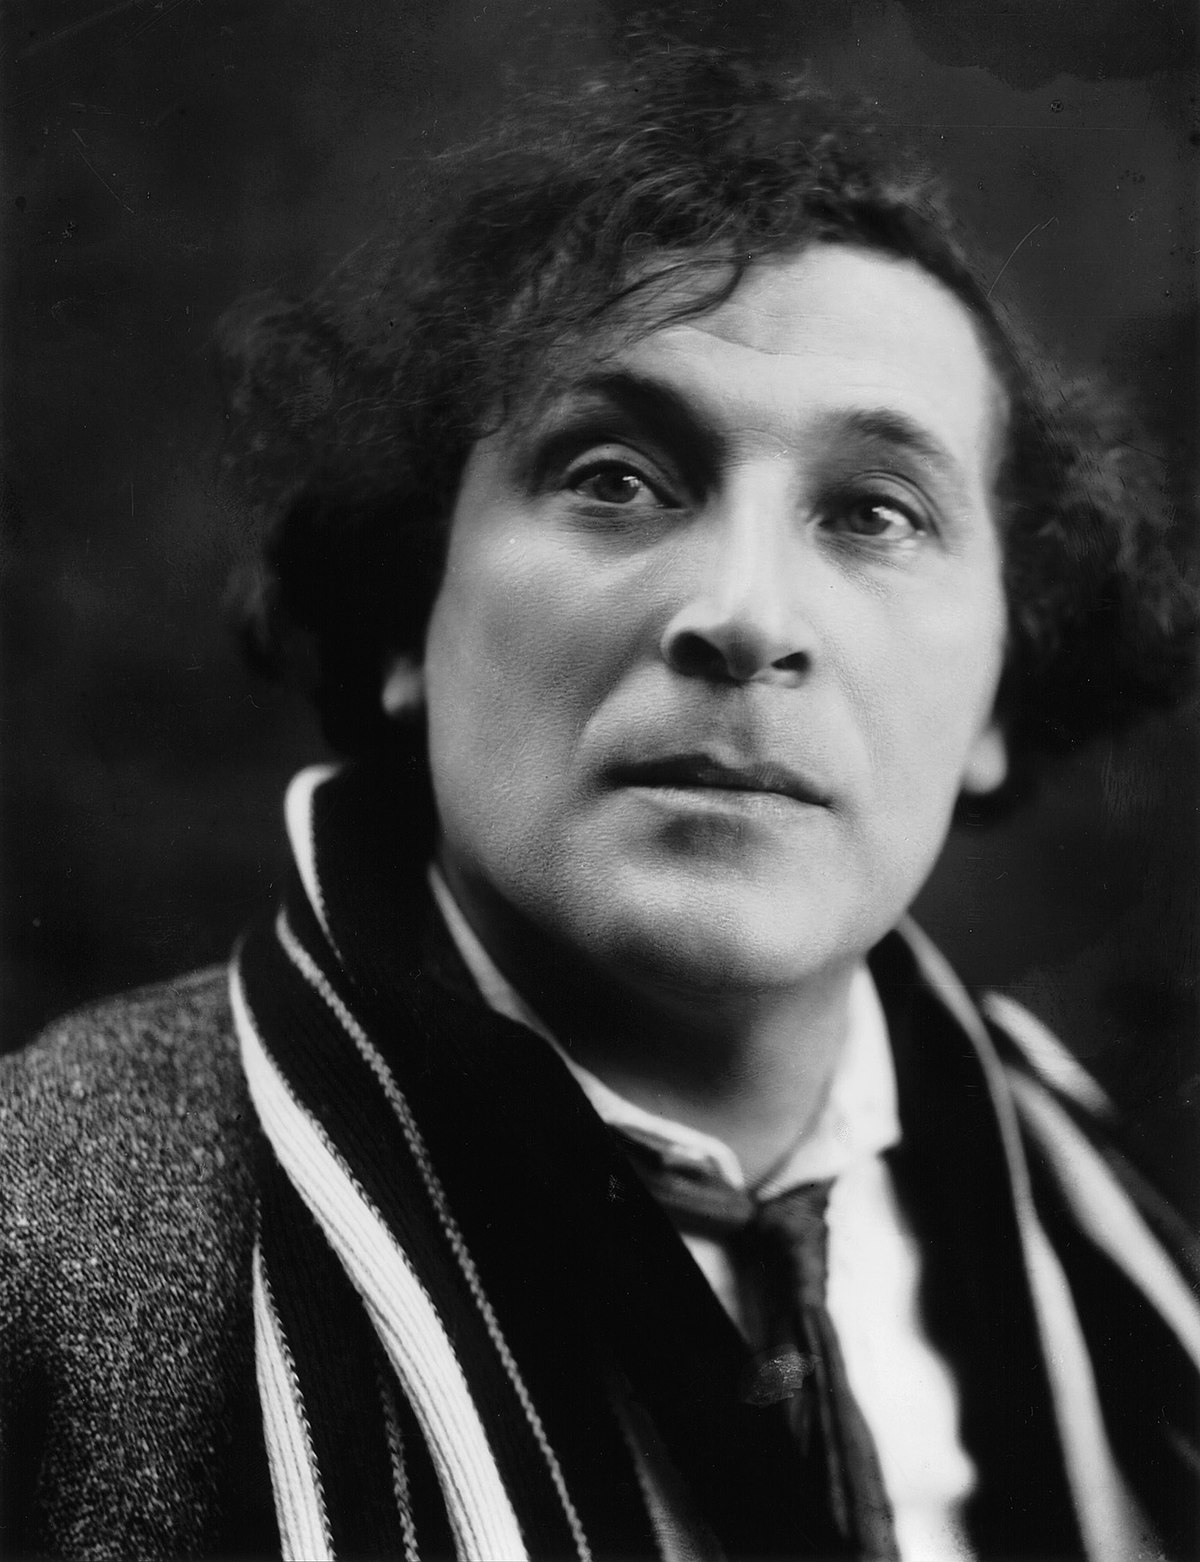 rue marc chagall 91700 fleury-mérogis : marc chagall known for :  marc chagall quien es en 2020/2021